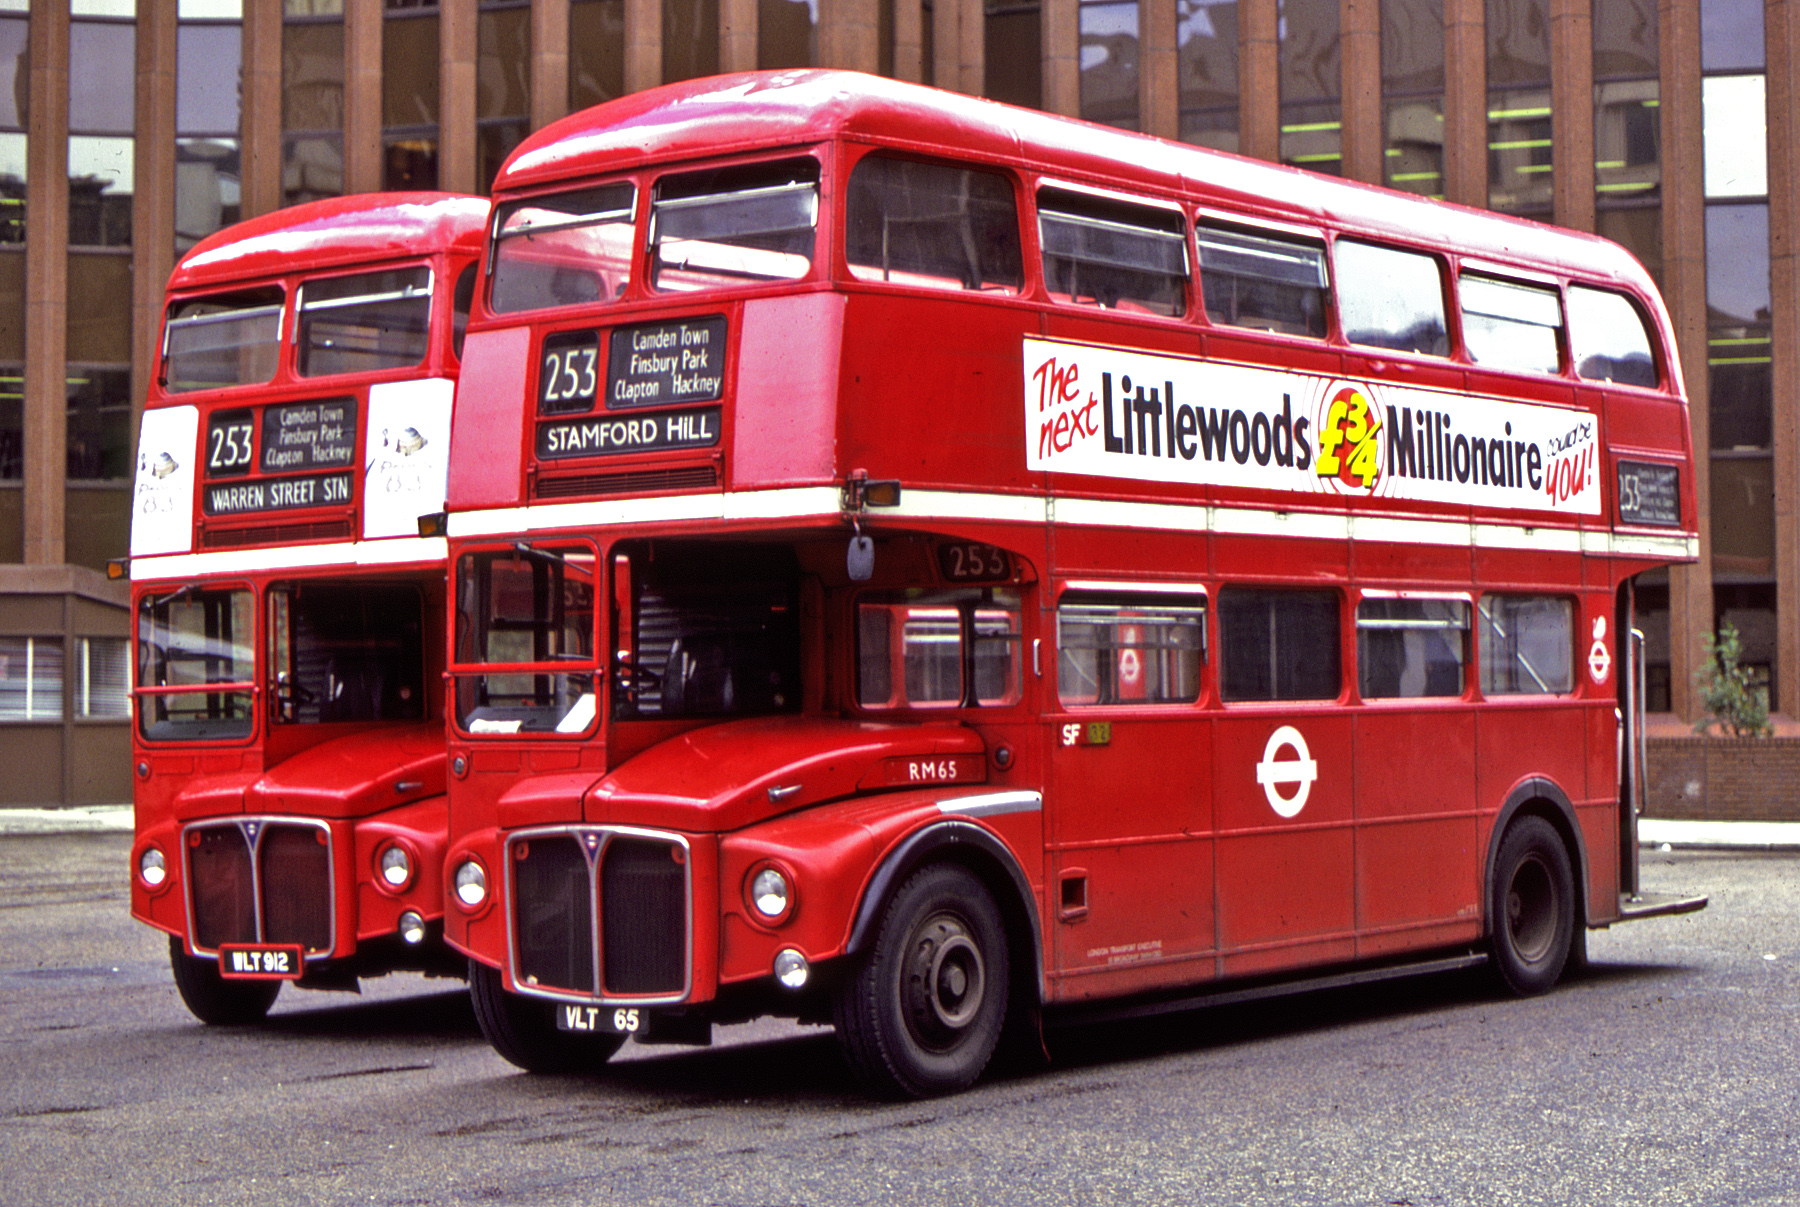 Two Routemasters on route 253 in September 1983. ©TedQuackenbush